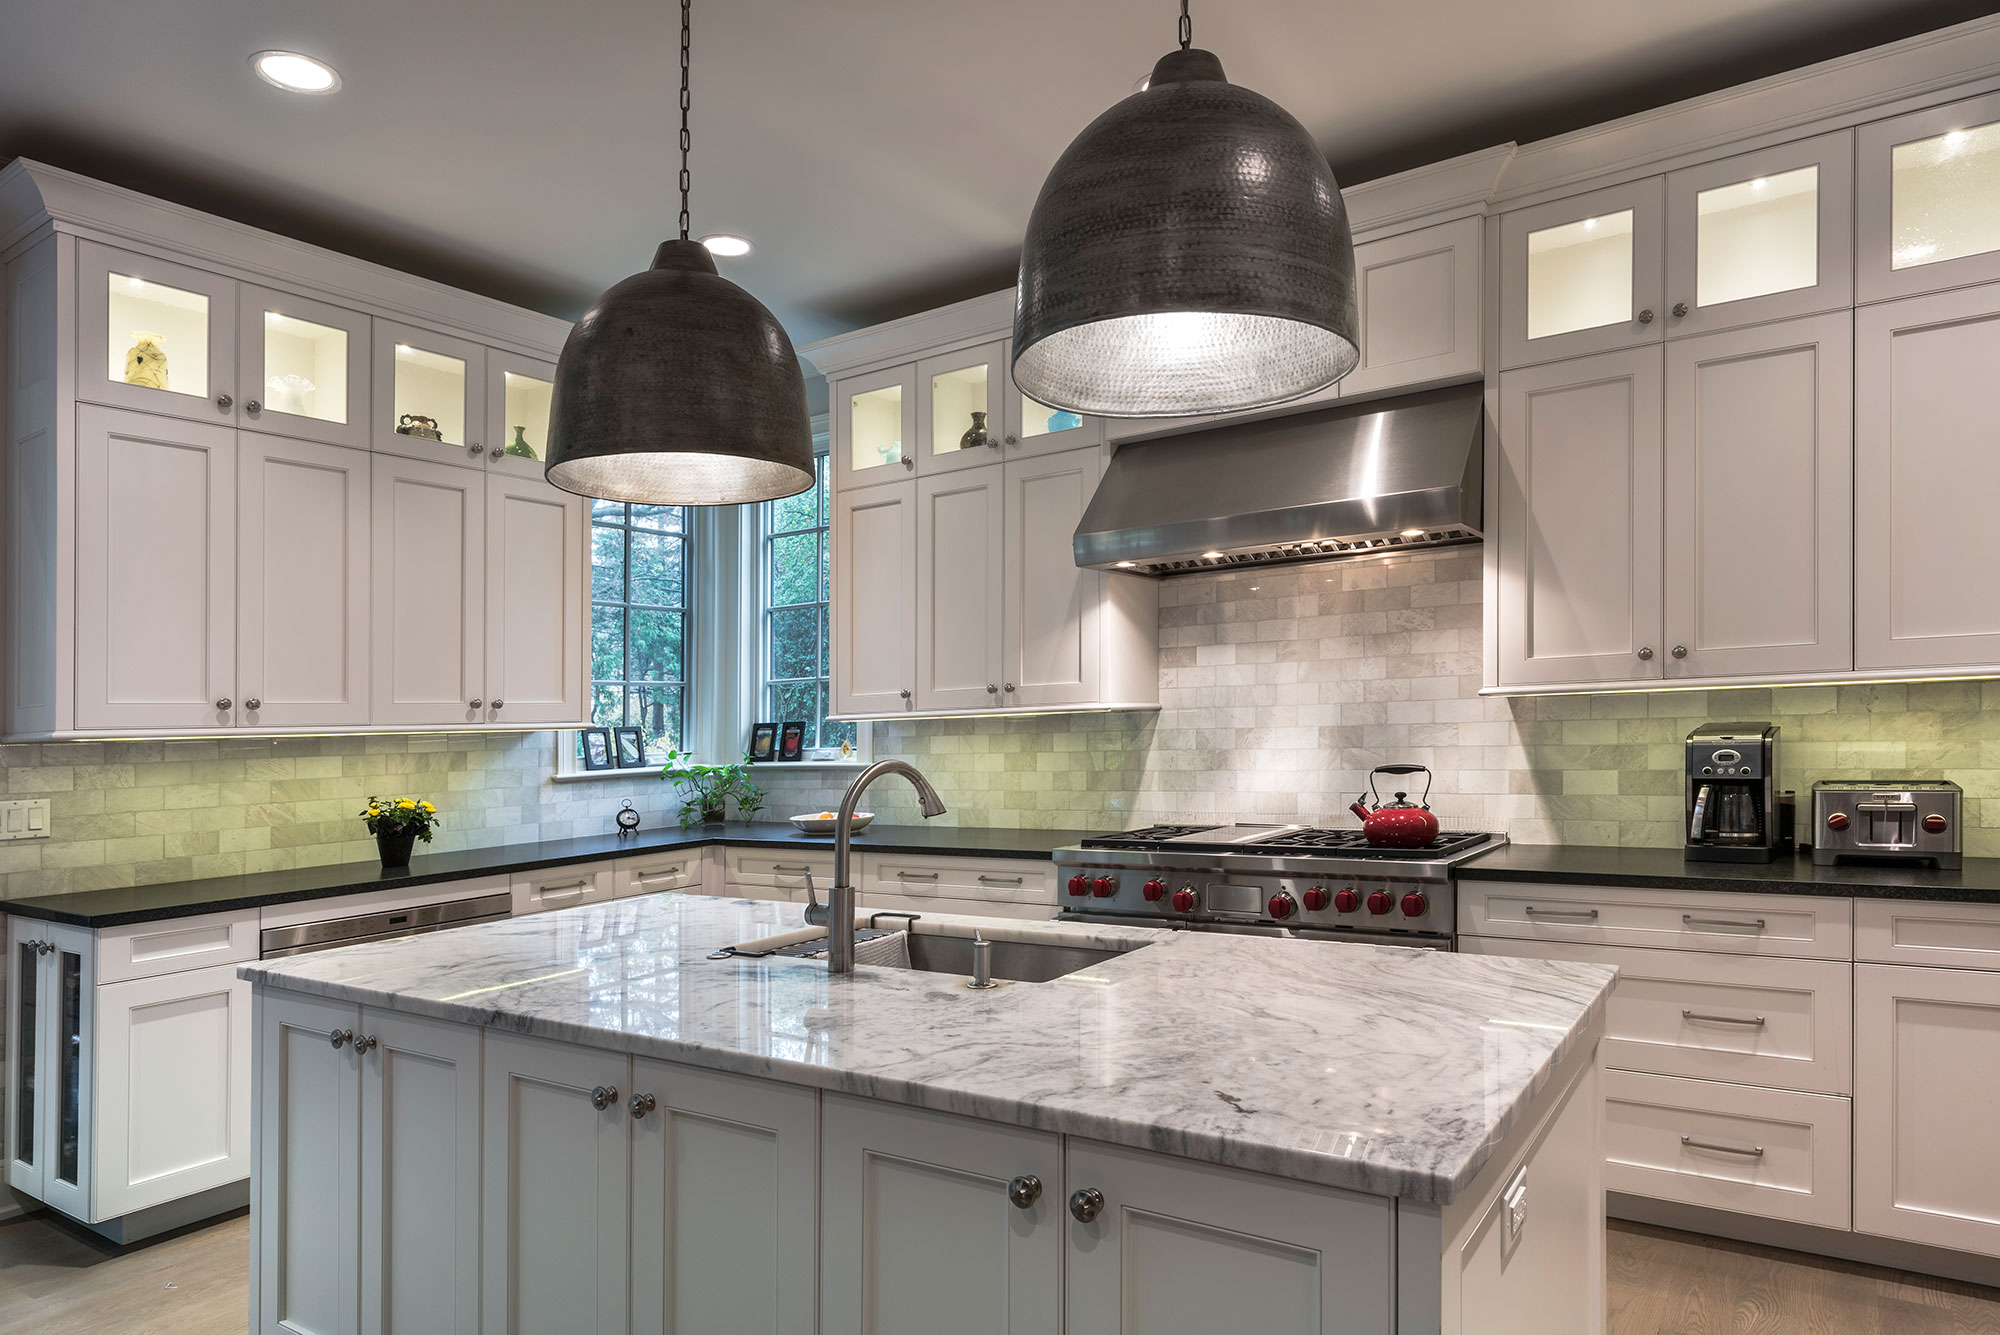 Kitchen With Custom Wooden Cabinetry, Stainless Steel Appliances, And  Granite Countertops